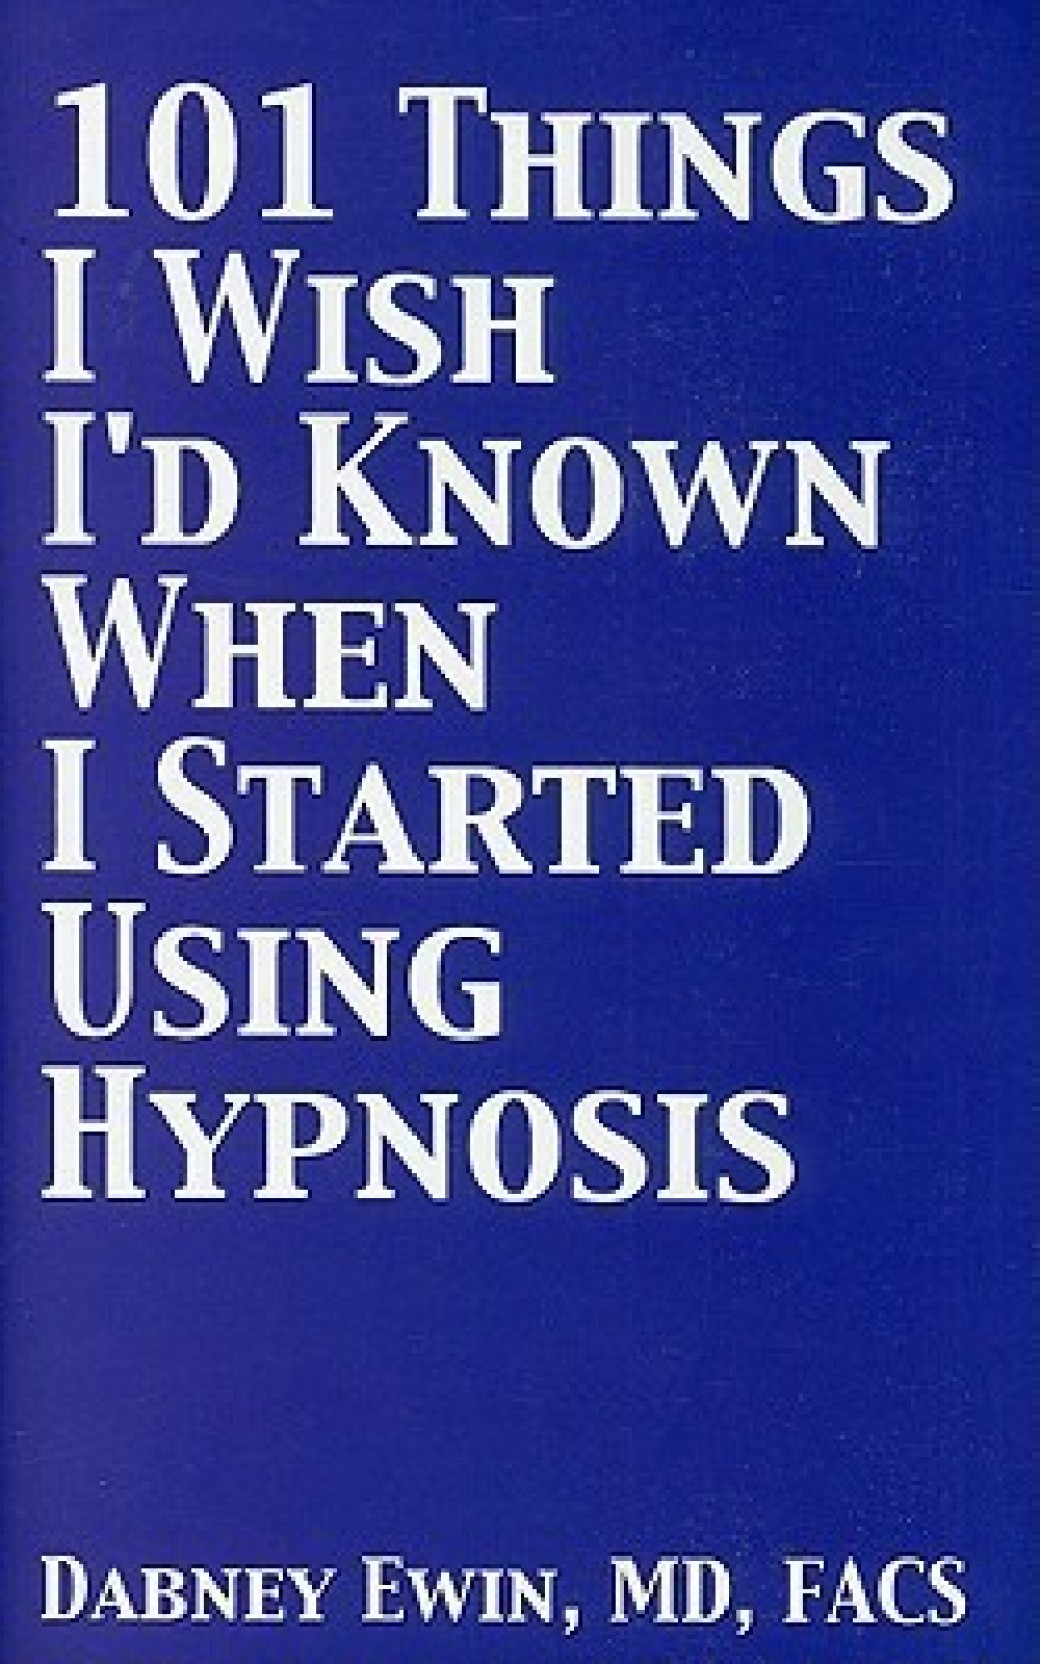 101 Things I Wish I'd Known When I Started Using Hypnosis. ADD TO CART